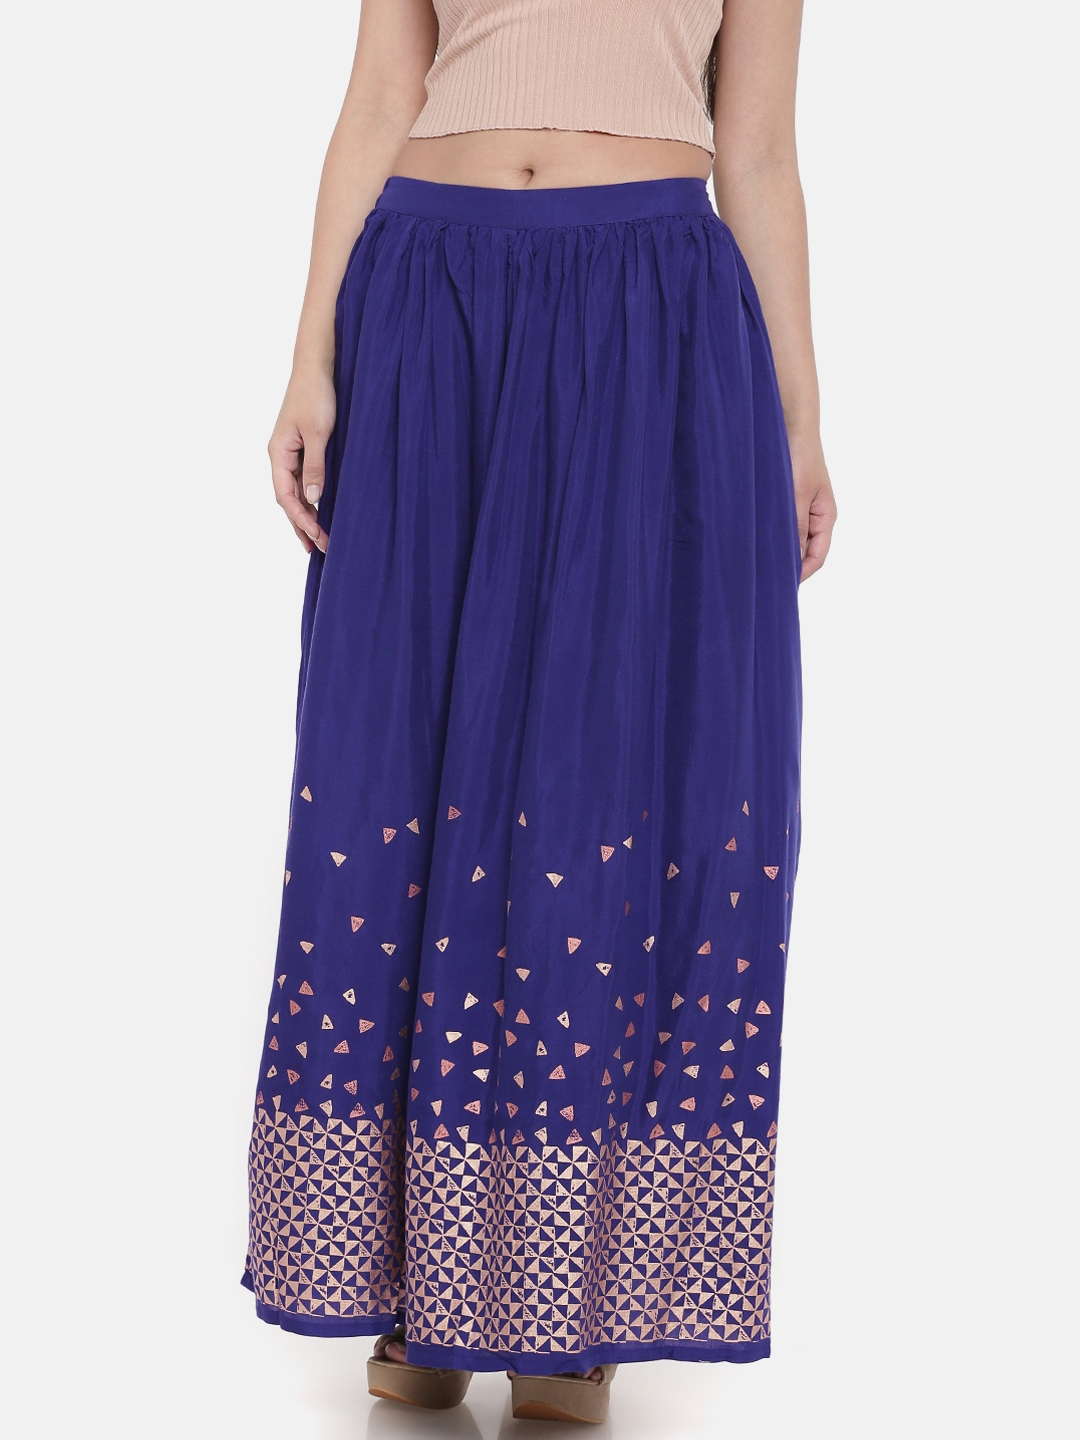 ea7a8aa3c1 Buy Global Desi Women Blue Printed A Line Maxi Skirt - Skirts for ...